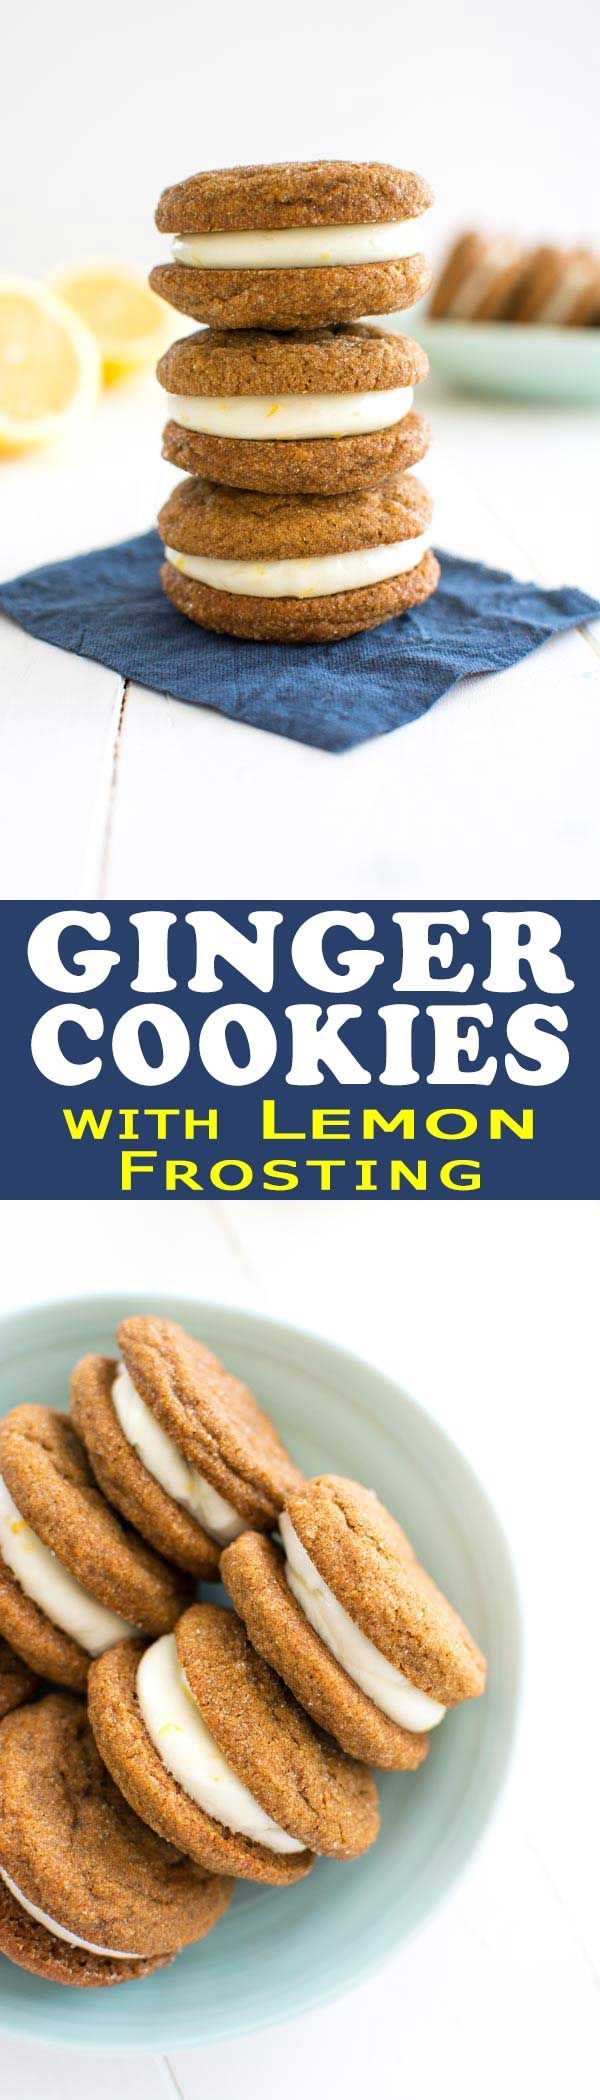 Soft ginger lemon cookies filled with tangy cream cheese frosting are the perfect cookie for the season and a unique addition to any cookie platter!